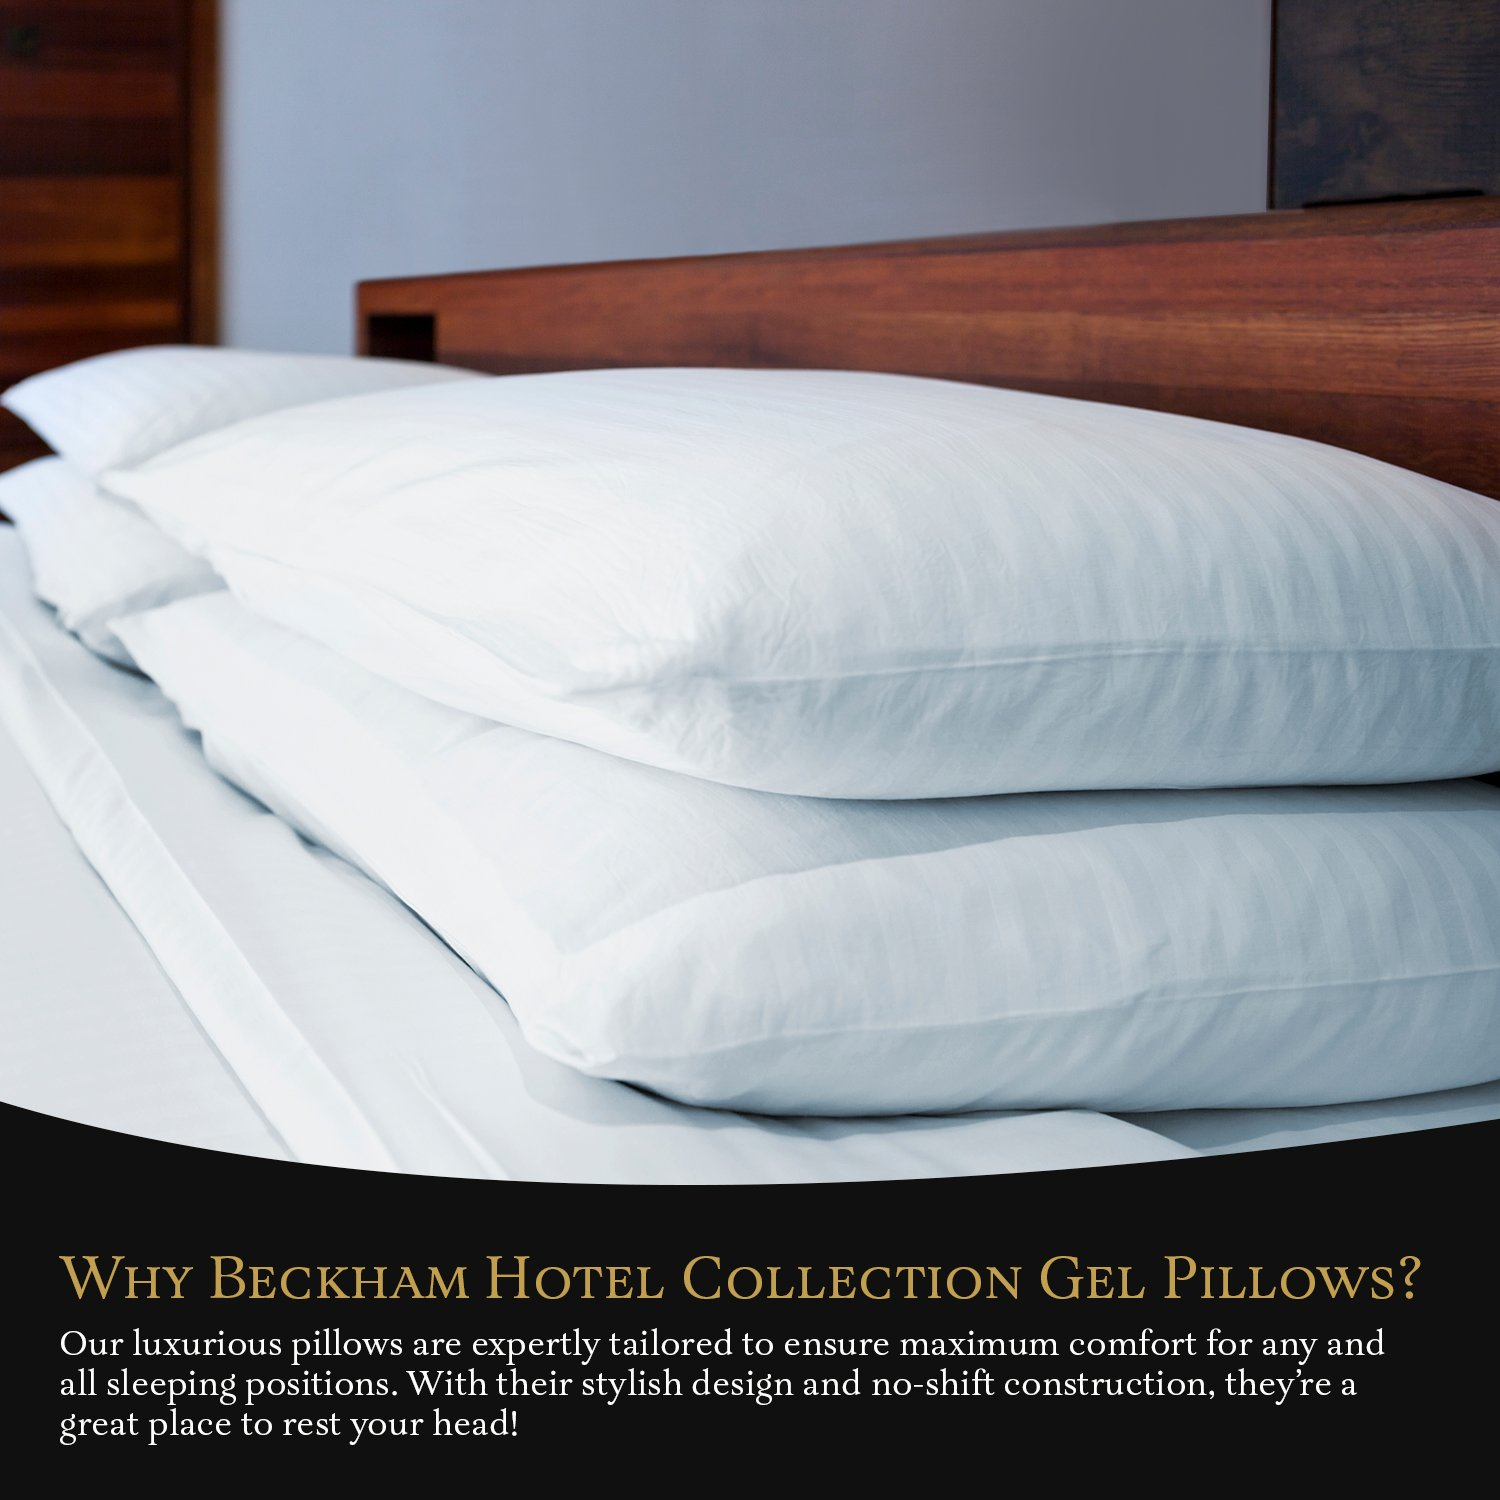 (2-Pack) - Luxury Plush Gel Pillow - Dust Mite Resistant & Hypoallergenic - Queen